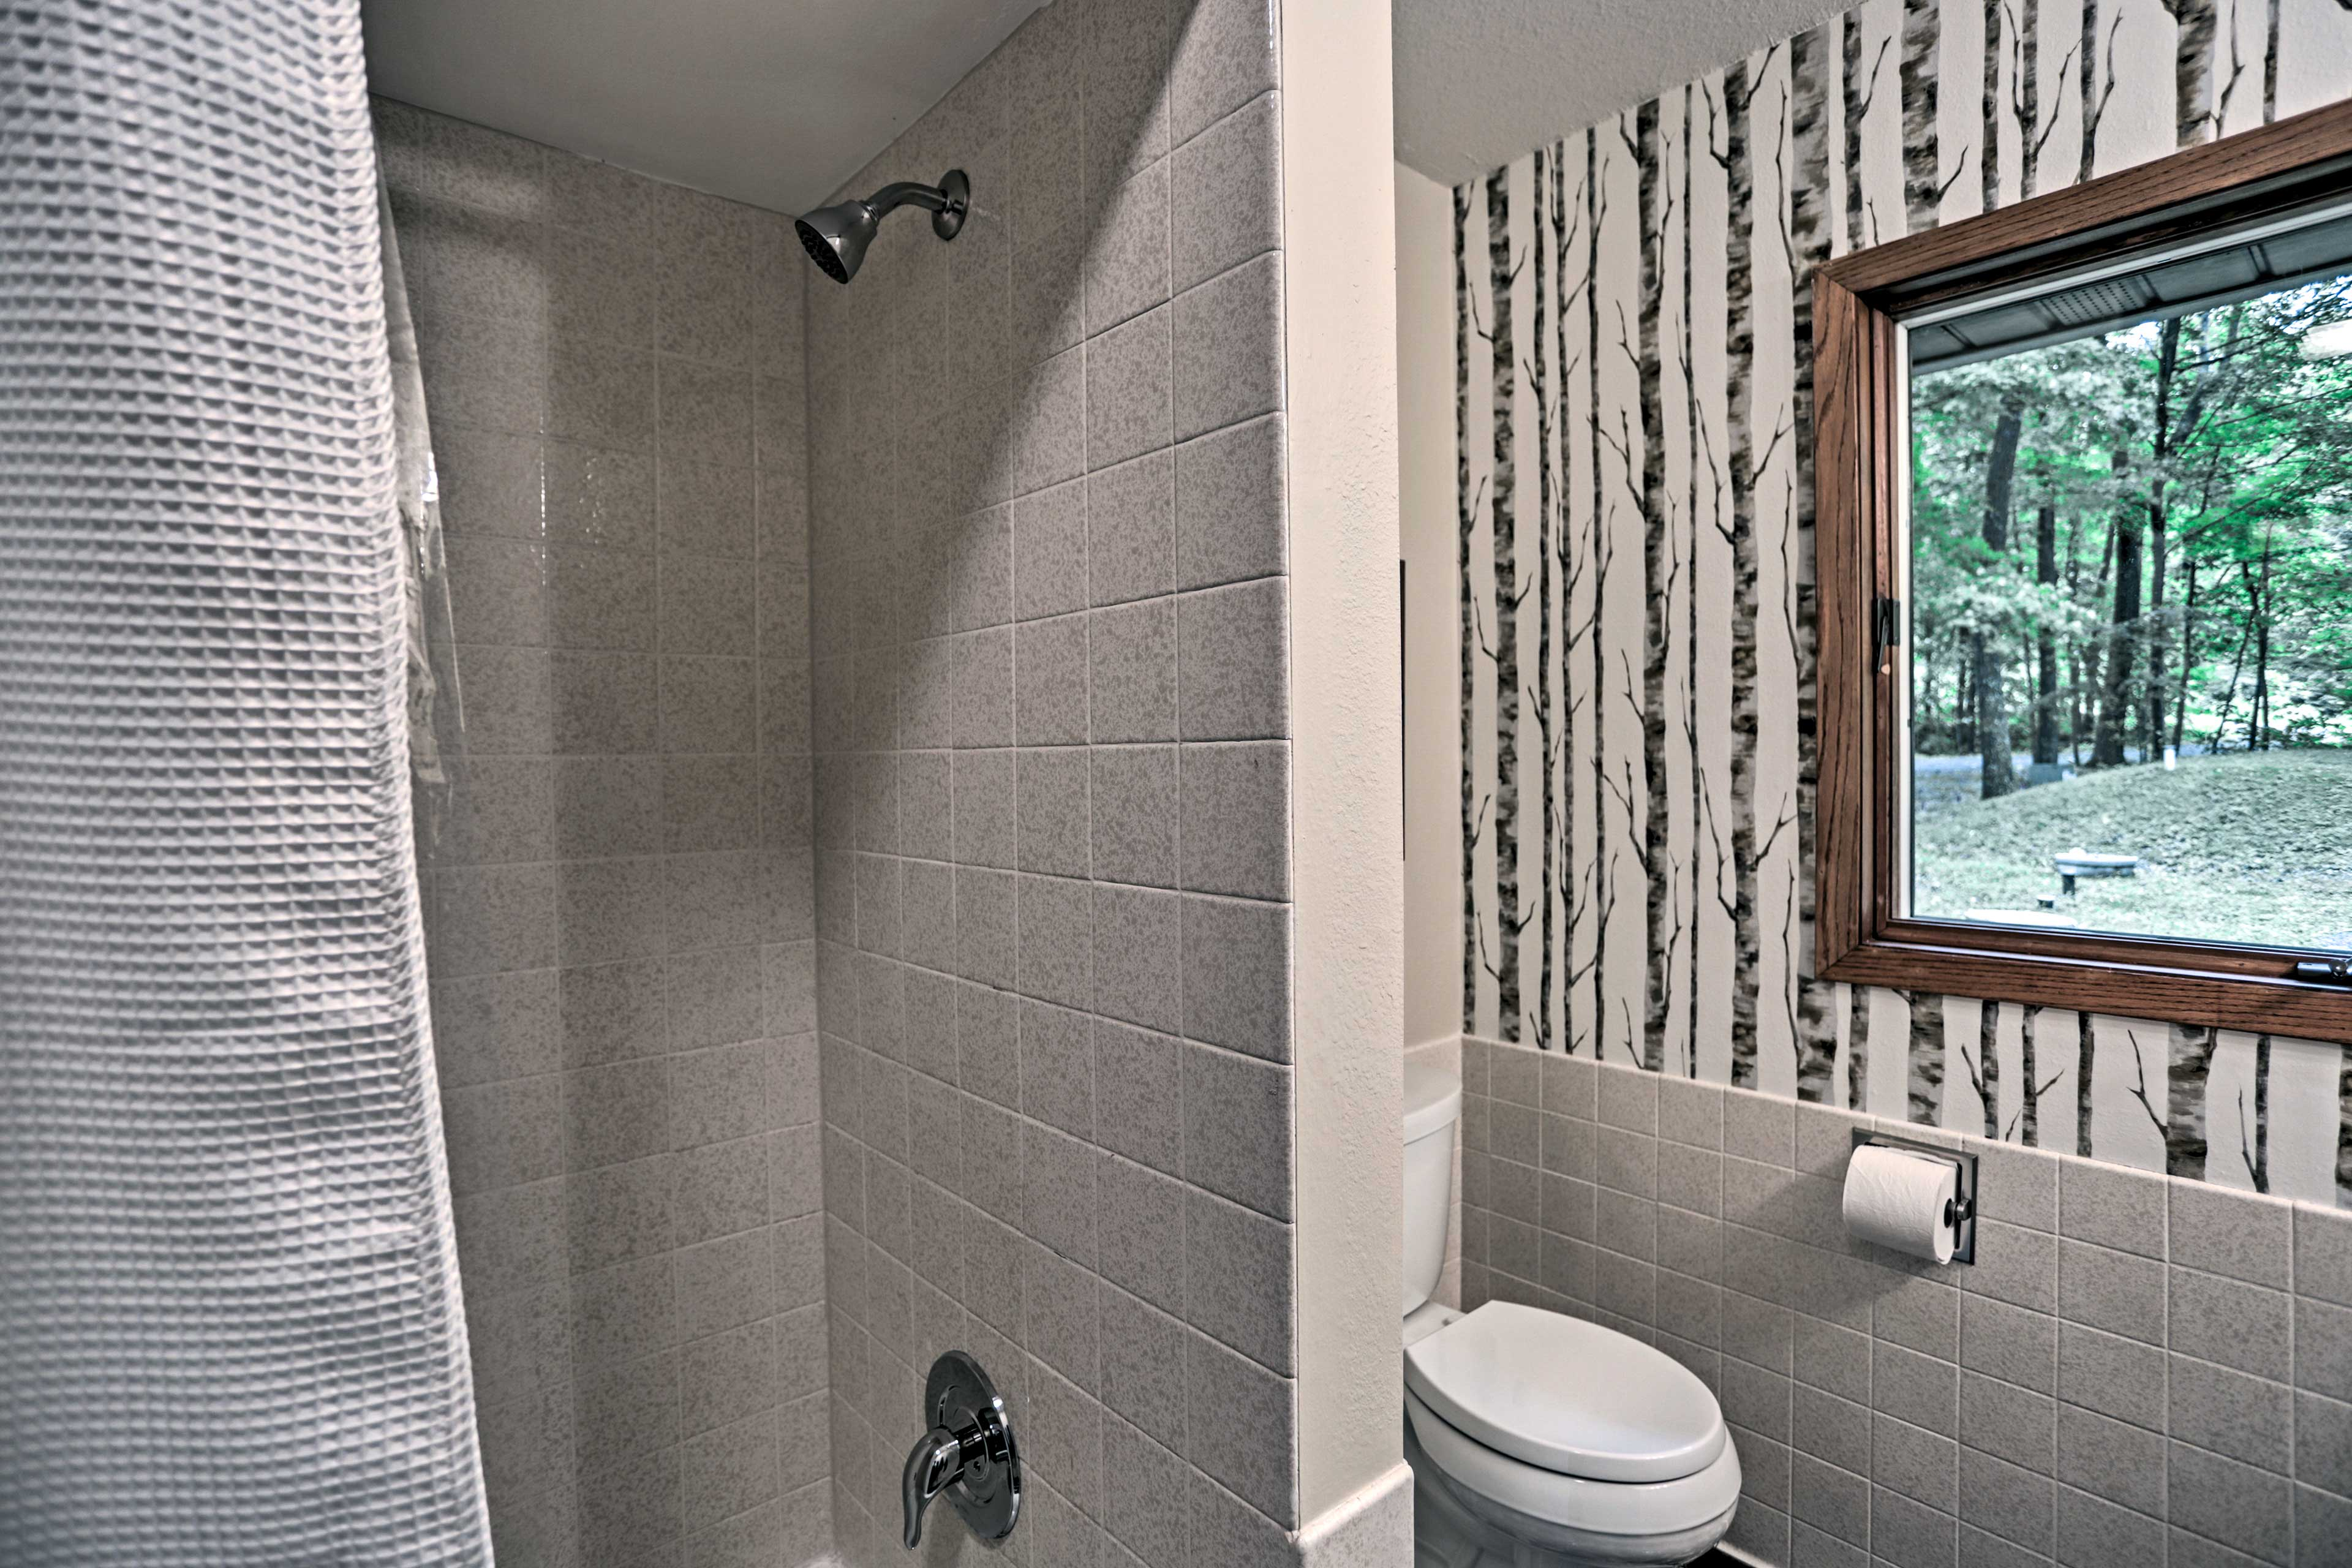 This second full bathroom hosts a shower/tub combo and birch tree wallpaper.